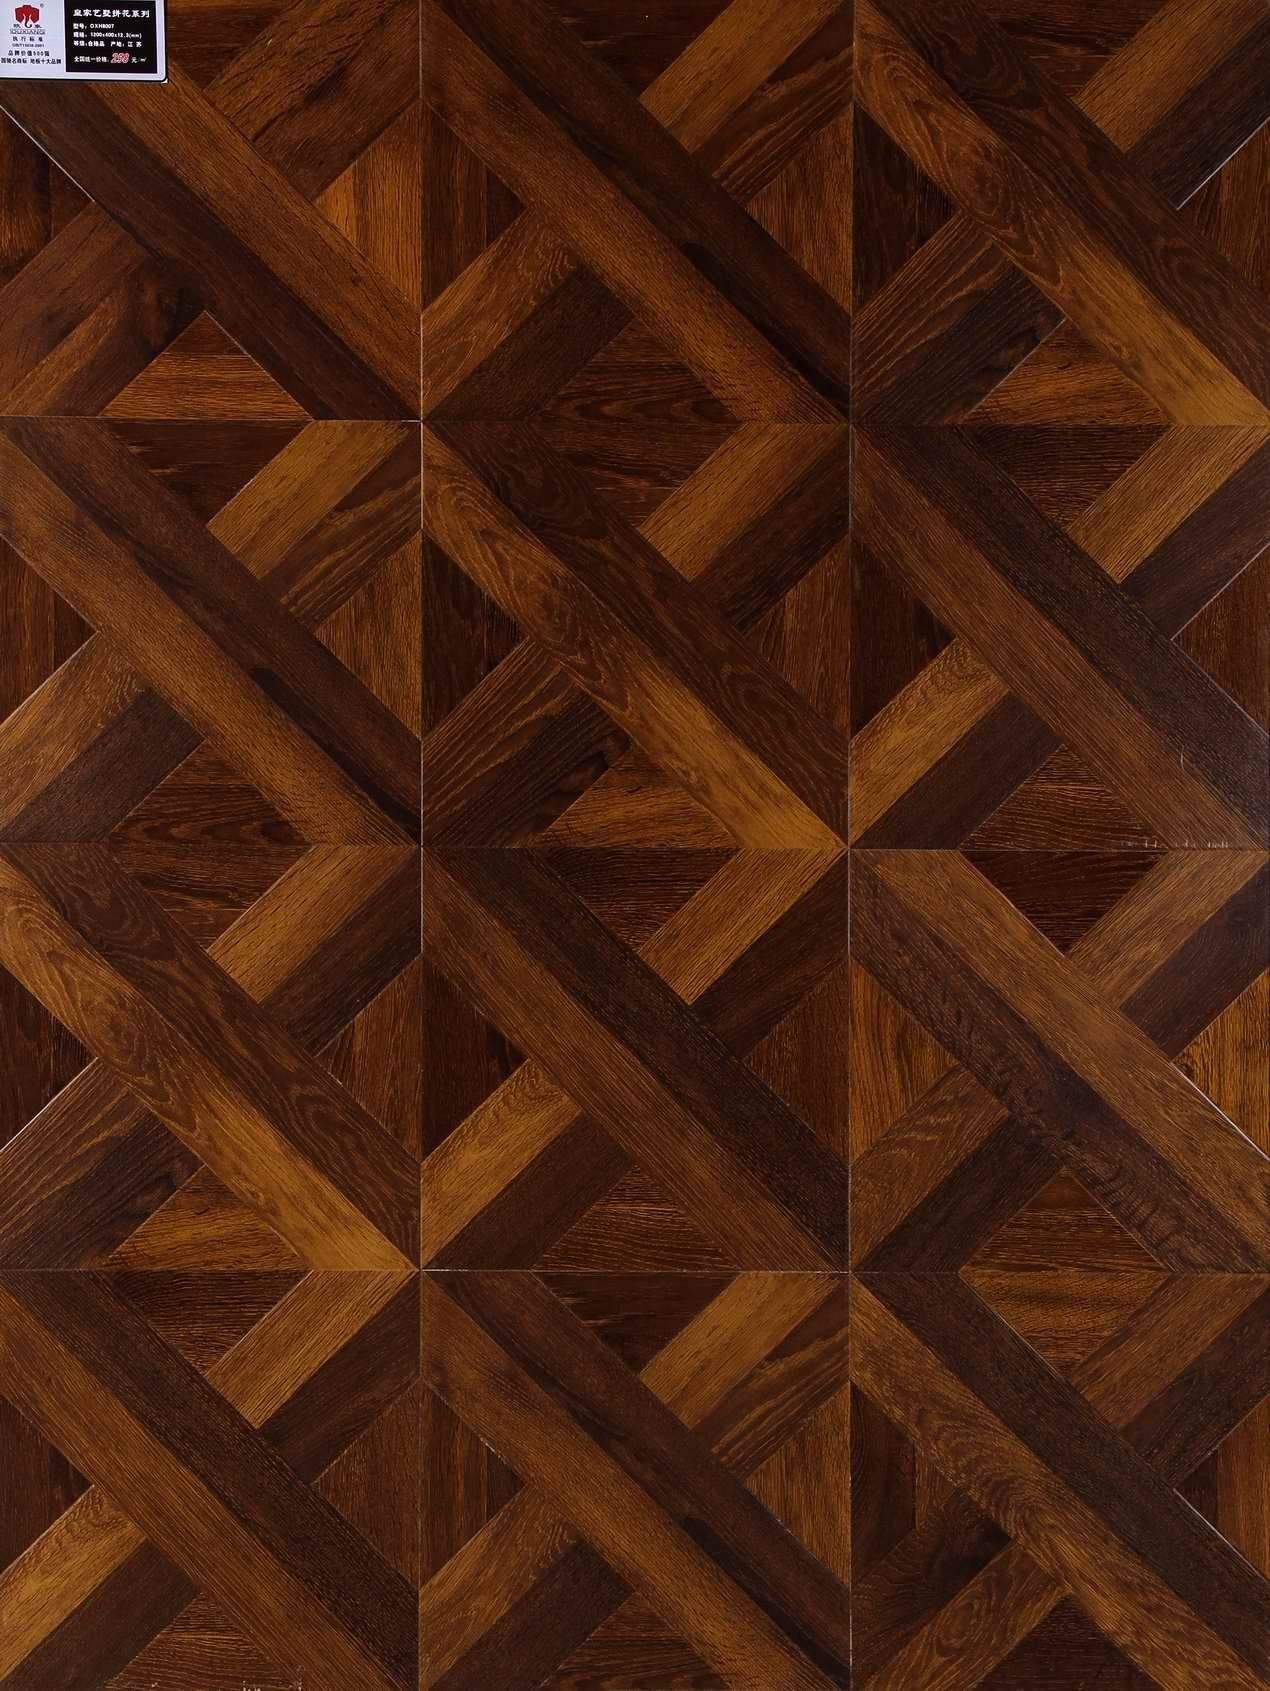 Dream flooring 3 parquet flooring oxh8007 g 12701691 china parquet flooring large image for parquet dailygadgetfo Images